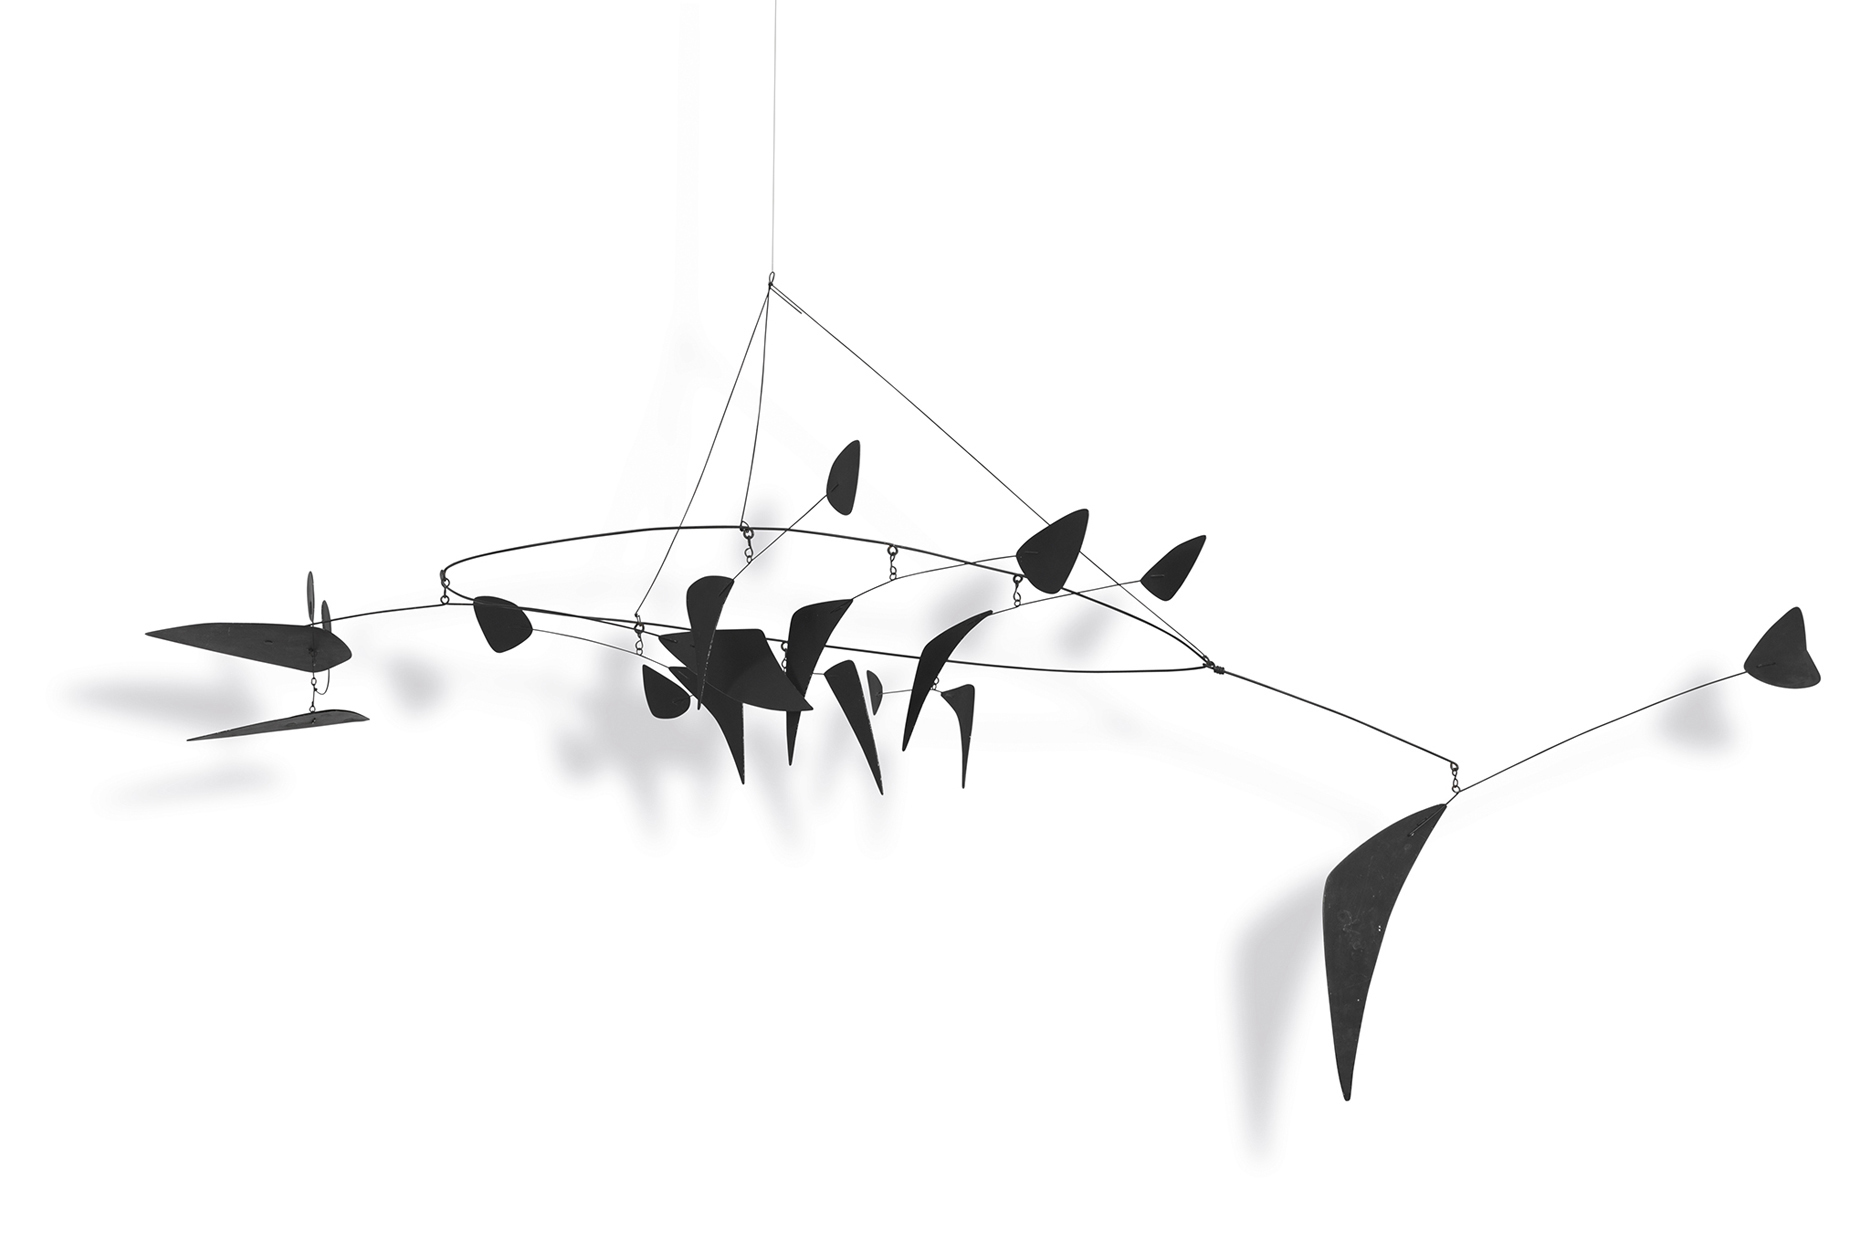 A fish mobile created by Alexander Calder. Movement with fishing